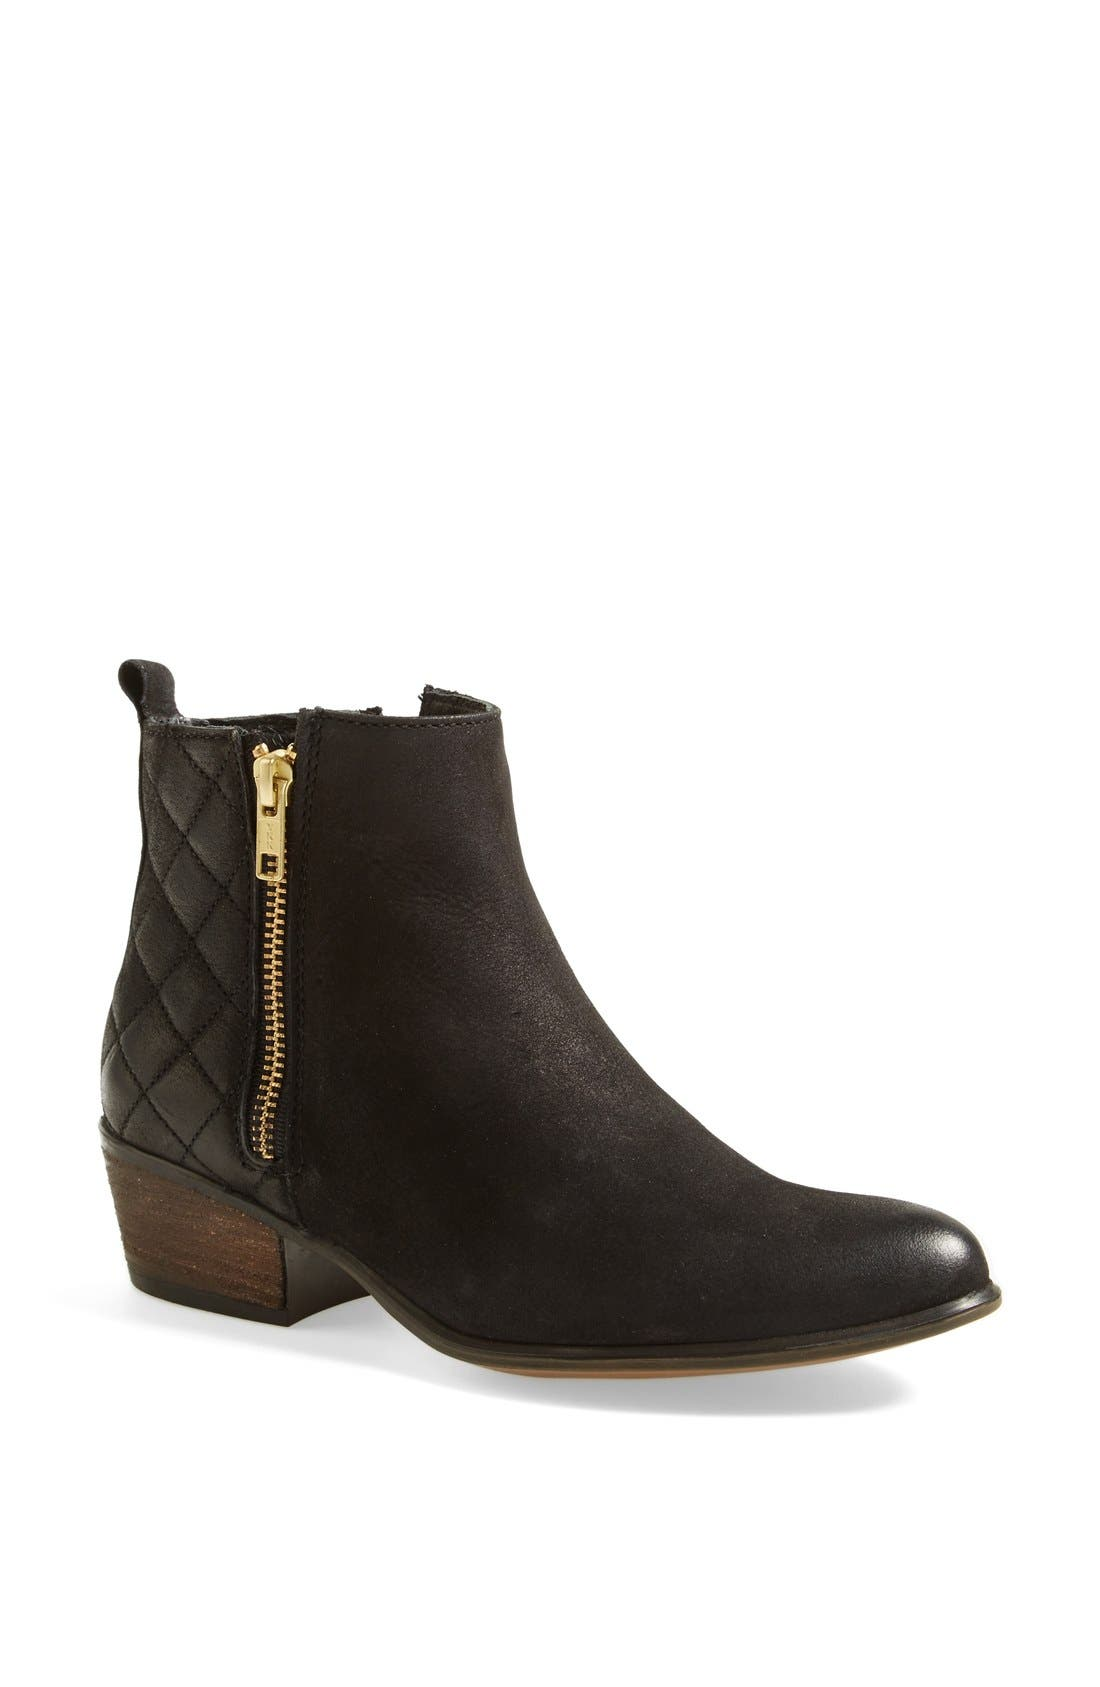 'Nyrvana' Boot,                             Main thumbnail 1, color,                             Black Leather